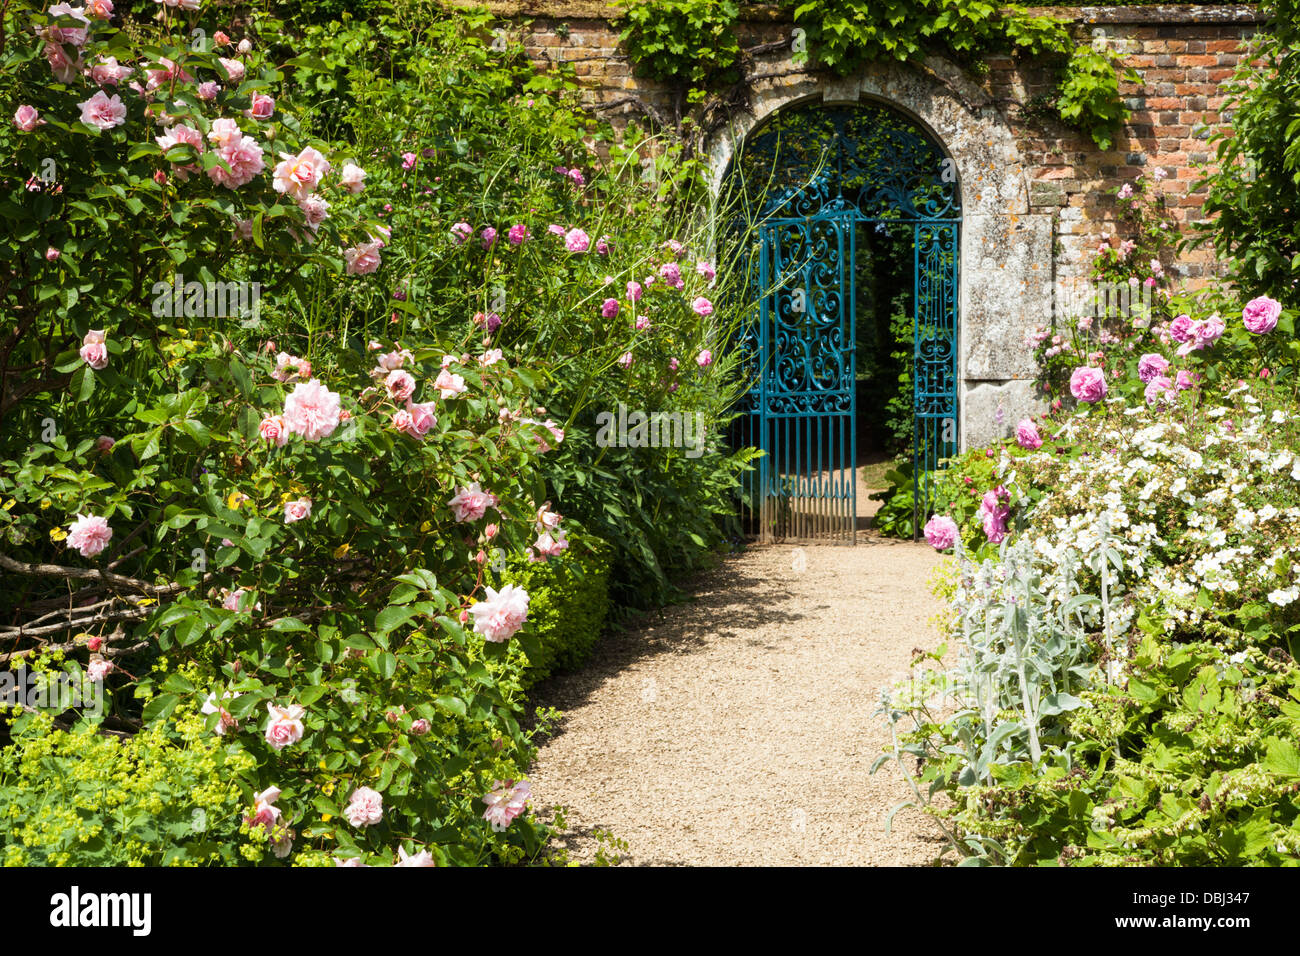 Entrance To Portland Rose Gardens : The arched gated entrance to walled garden of rousham